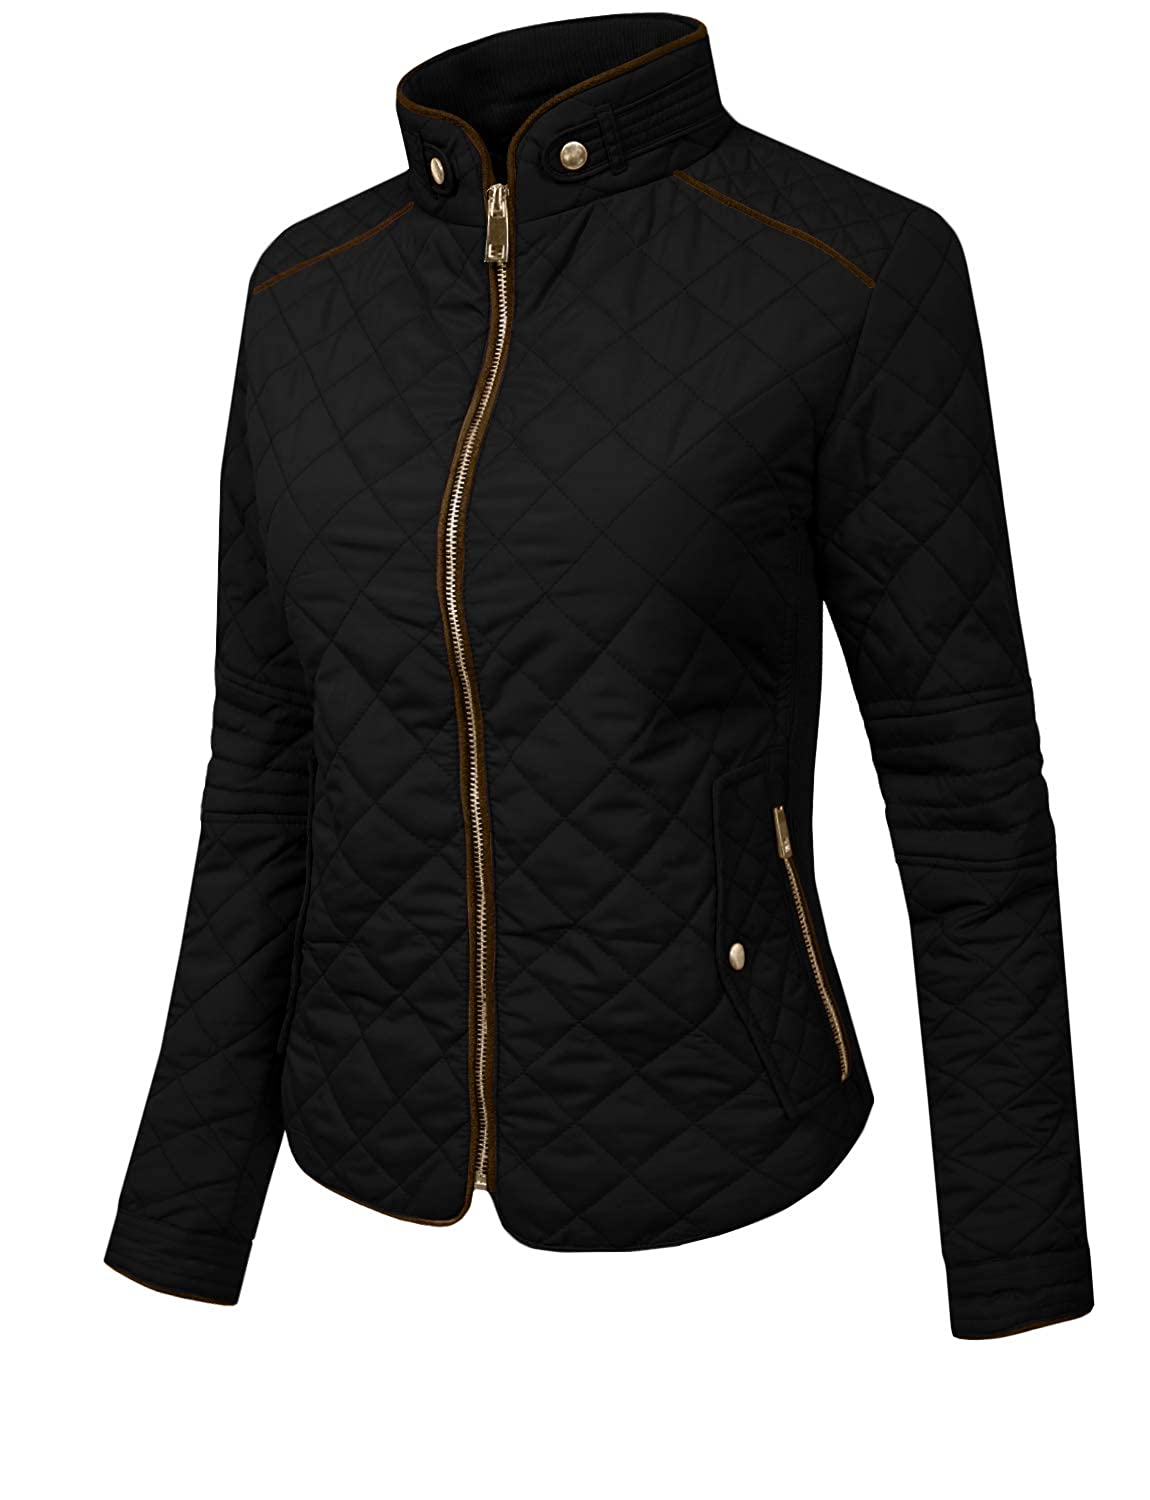 a708a7e1d23 J.LOVNY Womens Lightweight Quilted Warm Zip Jacket Vest with Pockets S-3XL  at Amazon Women s Coats Shop